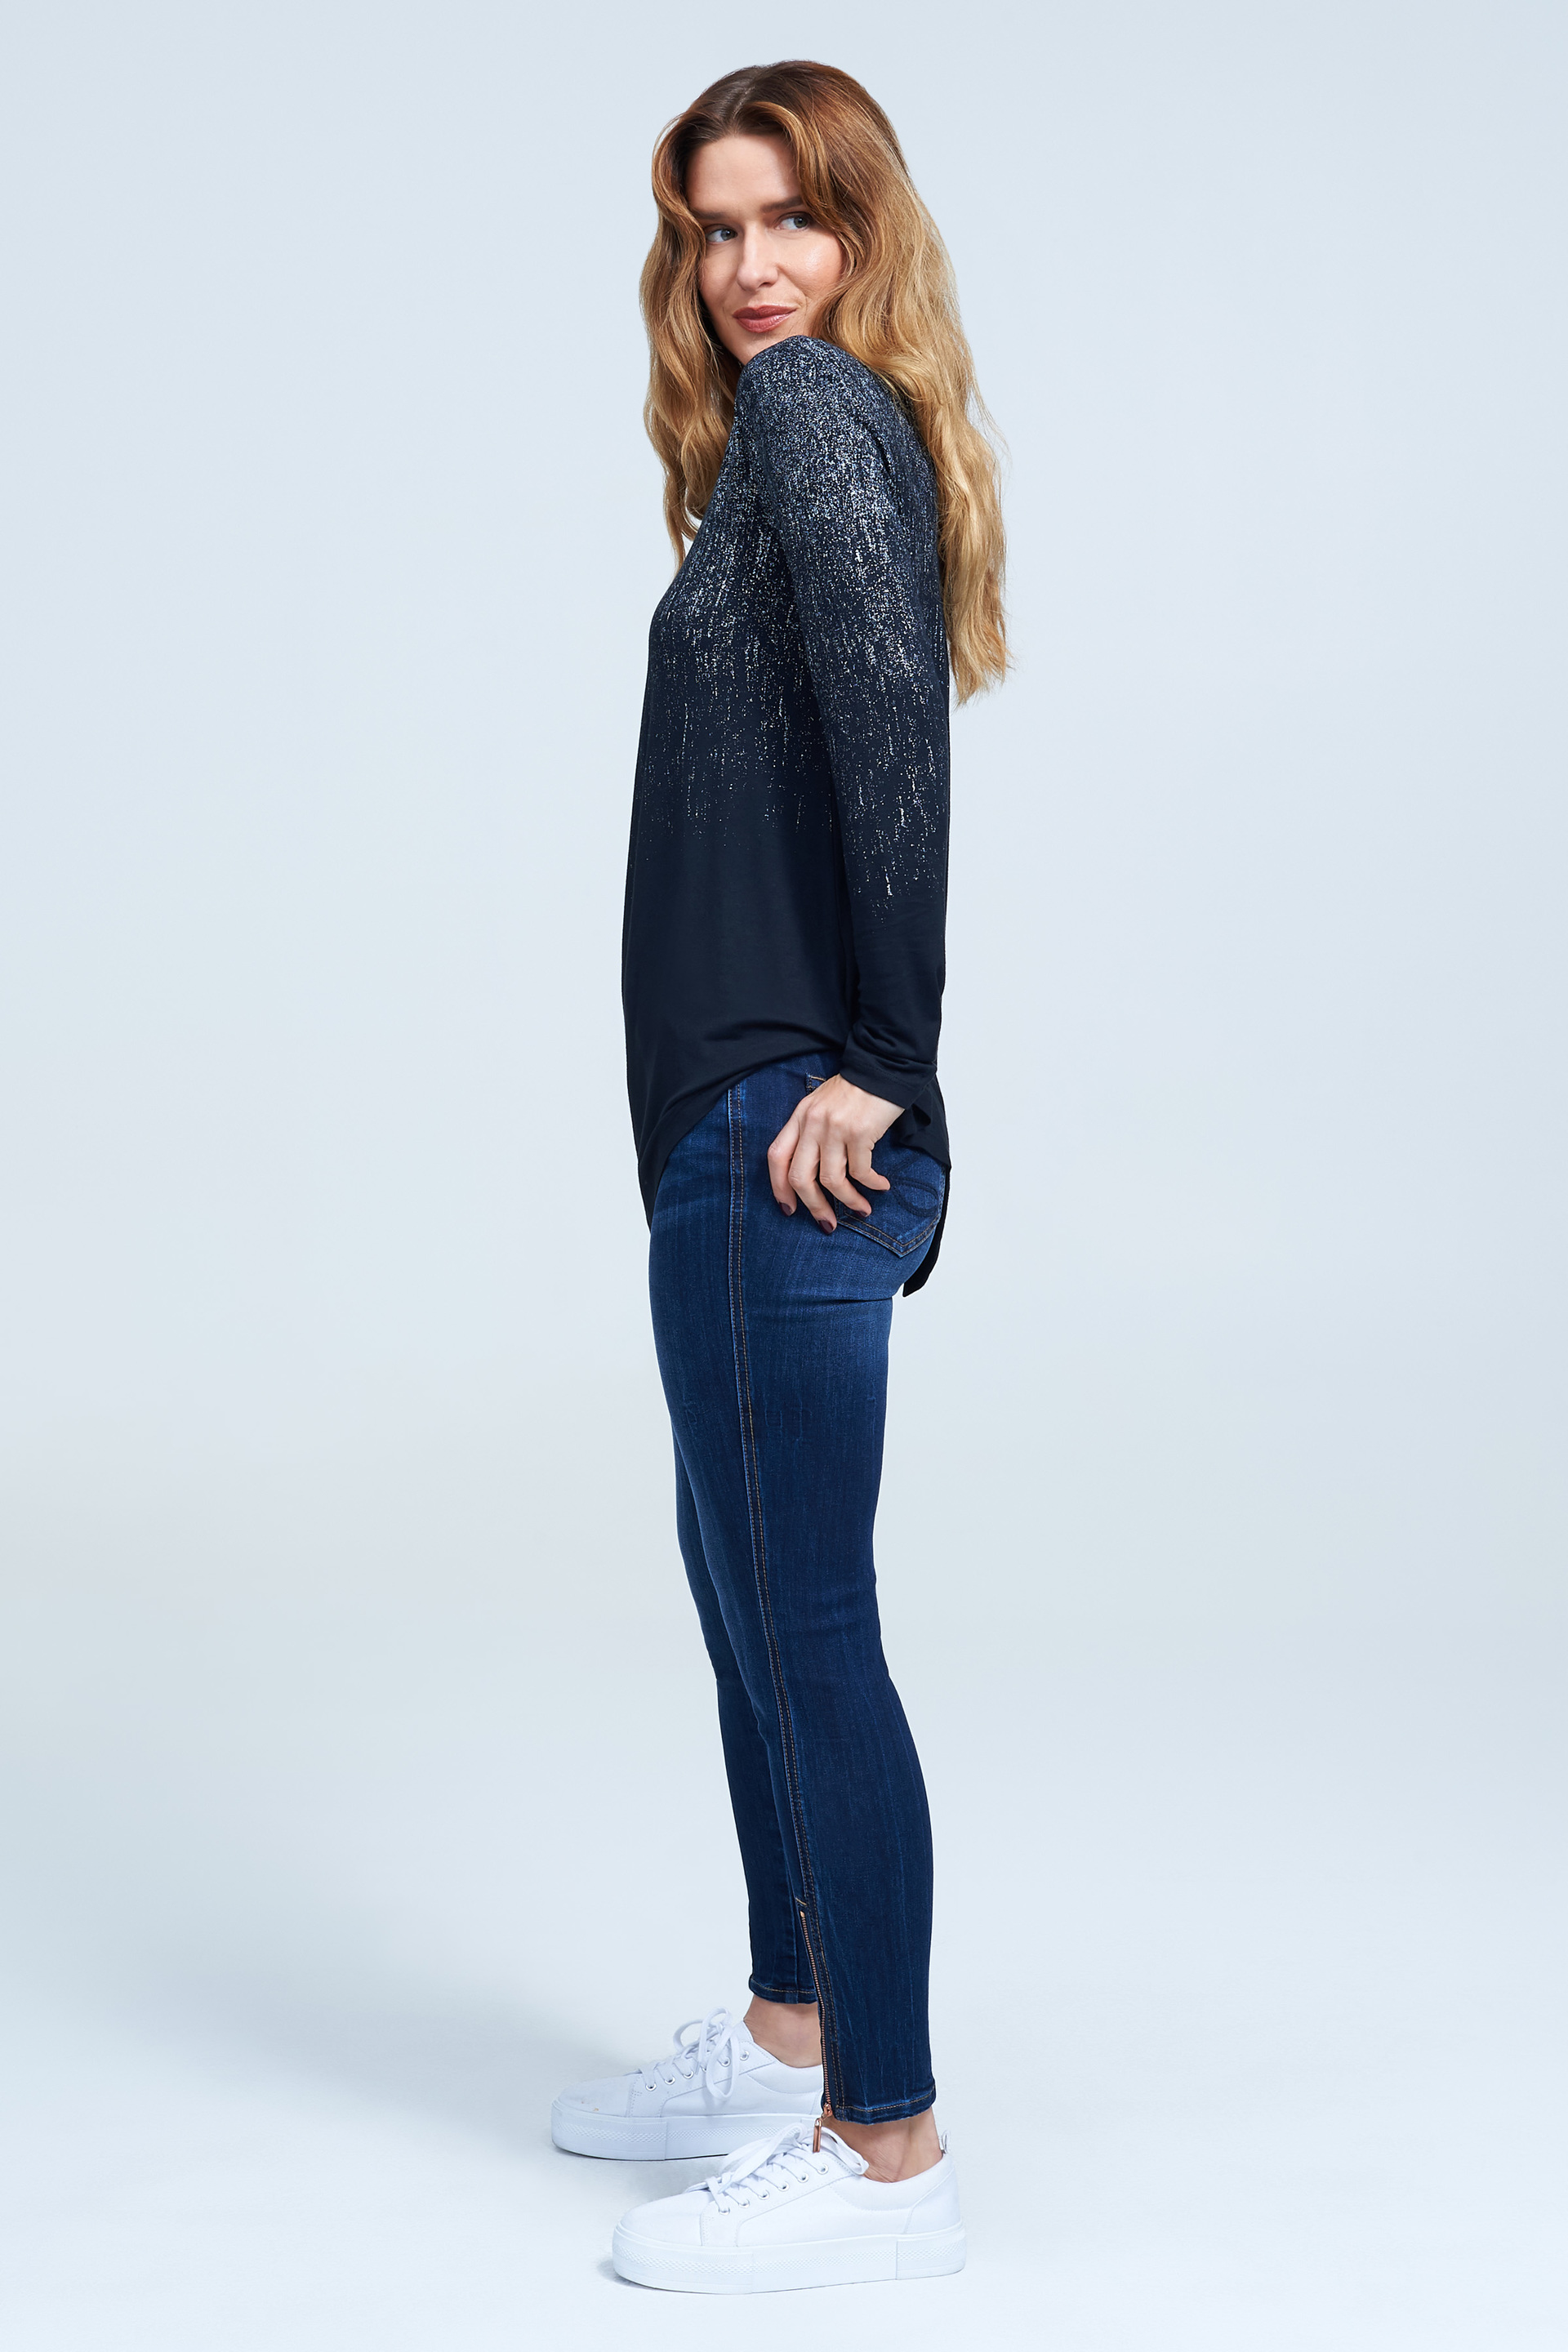 Seven7 Jeans Asymmetrical Hem Top with Foil Detail <p>Metallic silver foil catches the light on this long-sleeve knit top styled with long sleeves and a pointed hemline.</p>